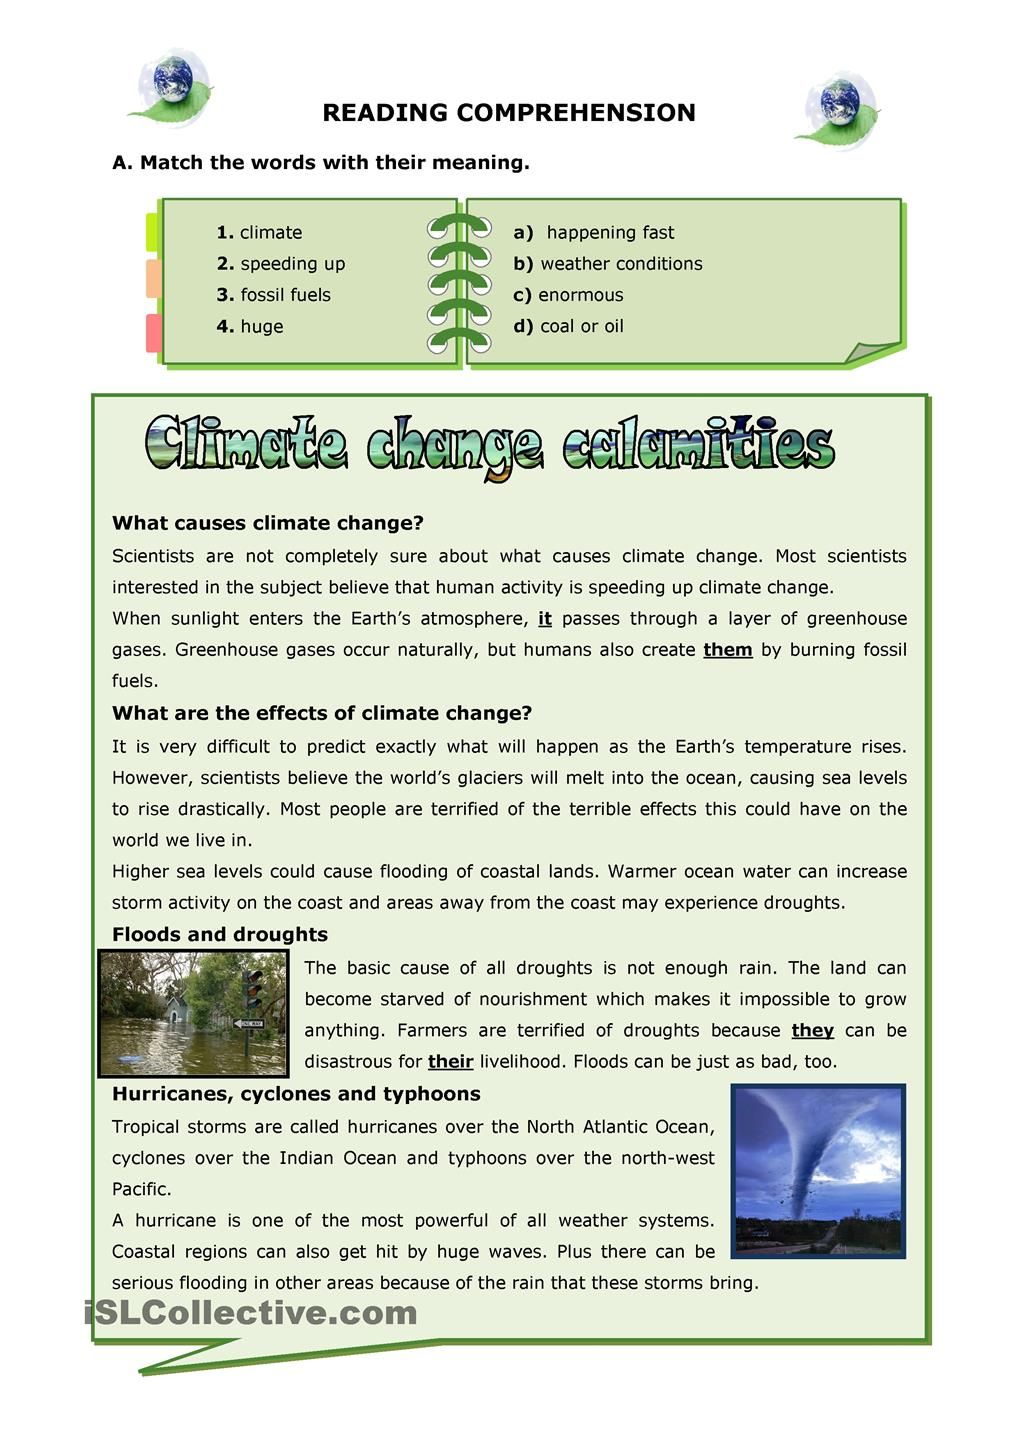 Climate Change Calamities Reading Pinterest Climate